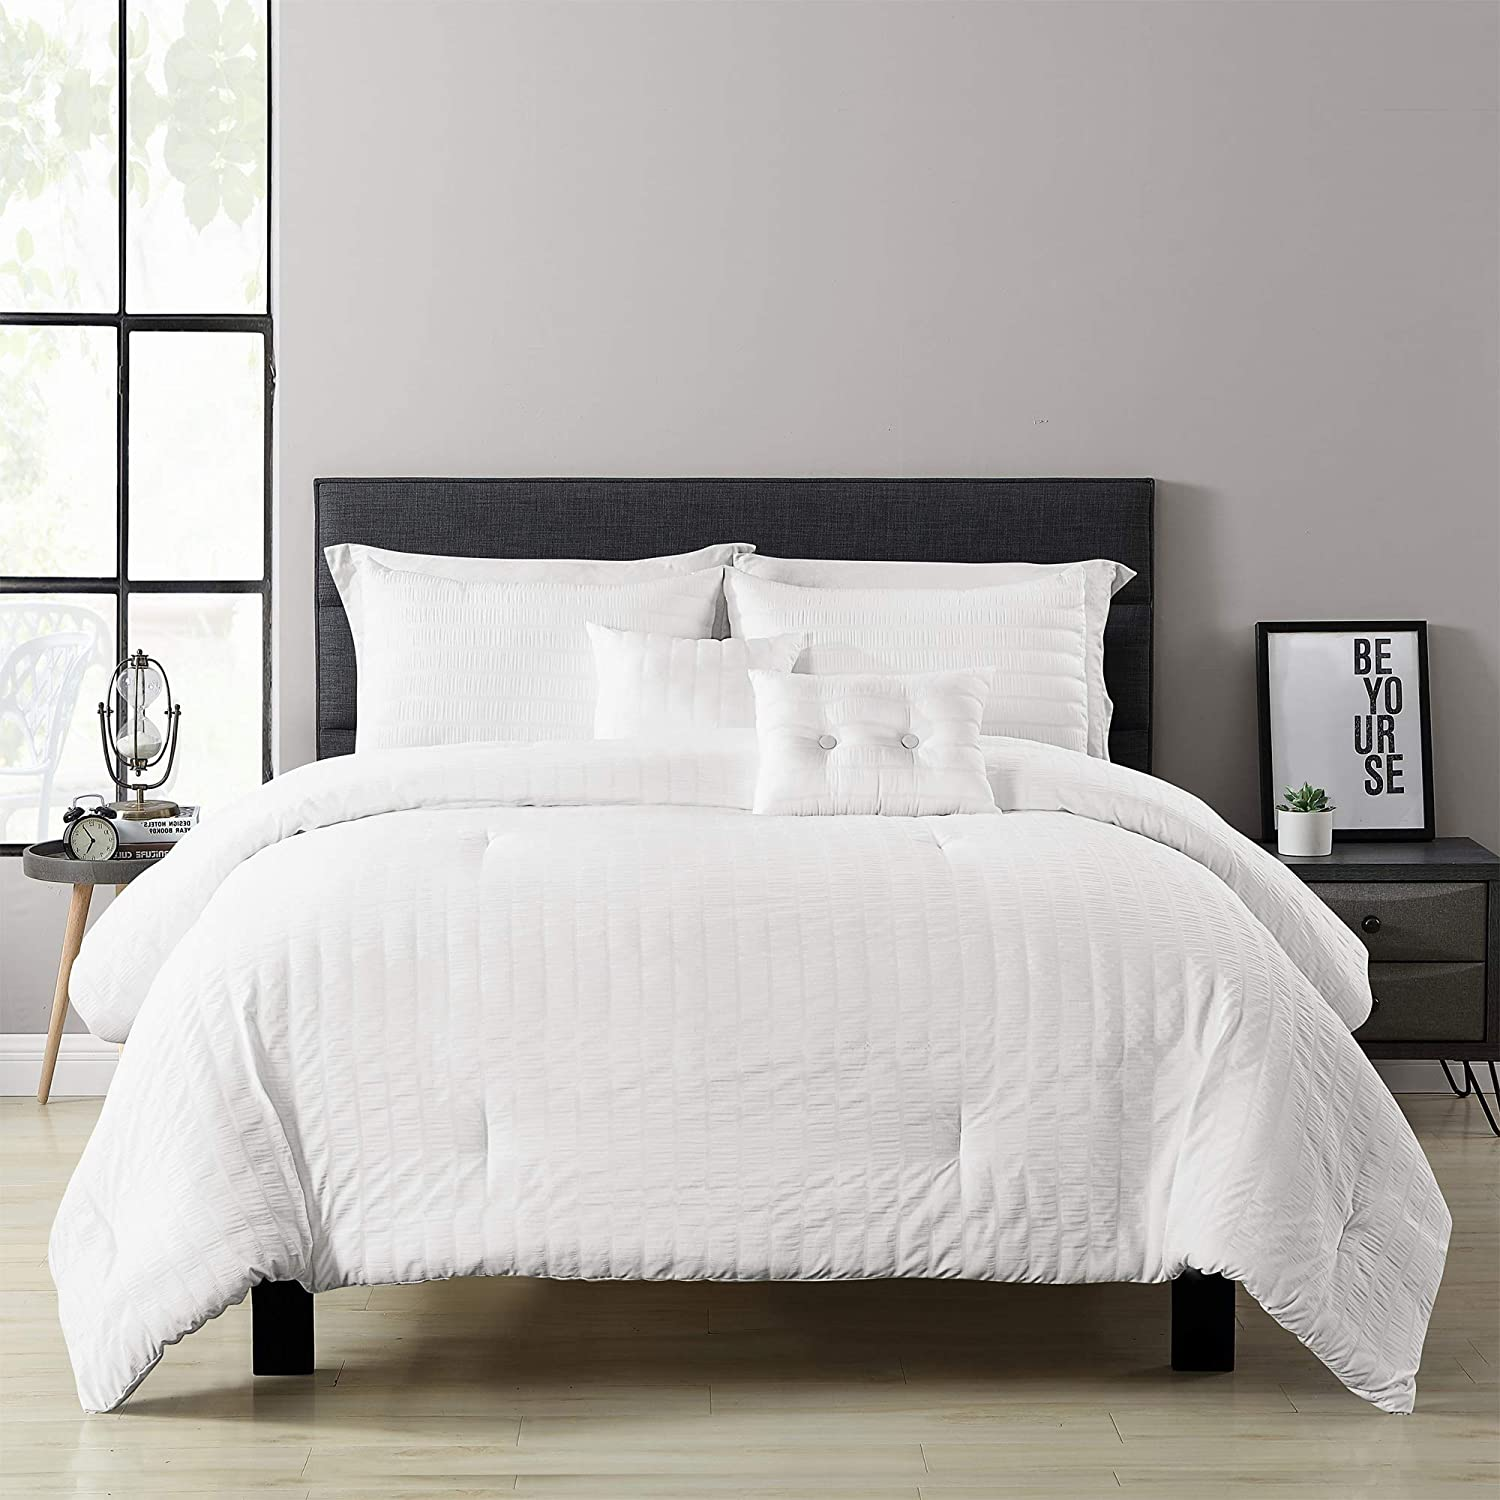 Lush Décor Farmhouse Seersucker 5-Piece King Comforter Set (White)